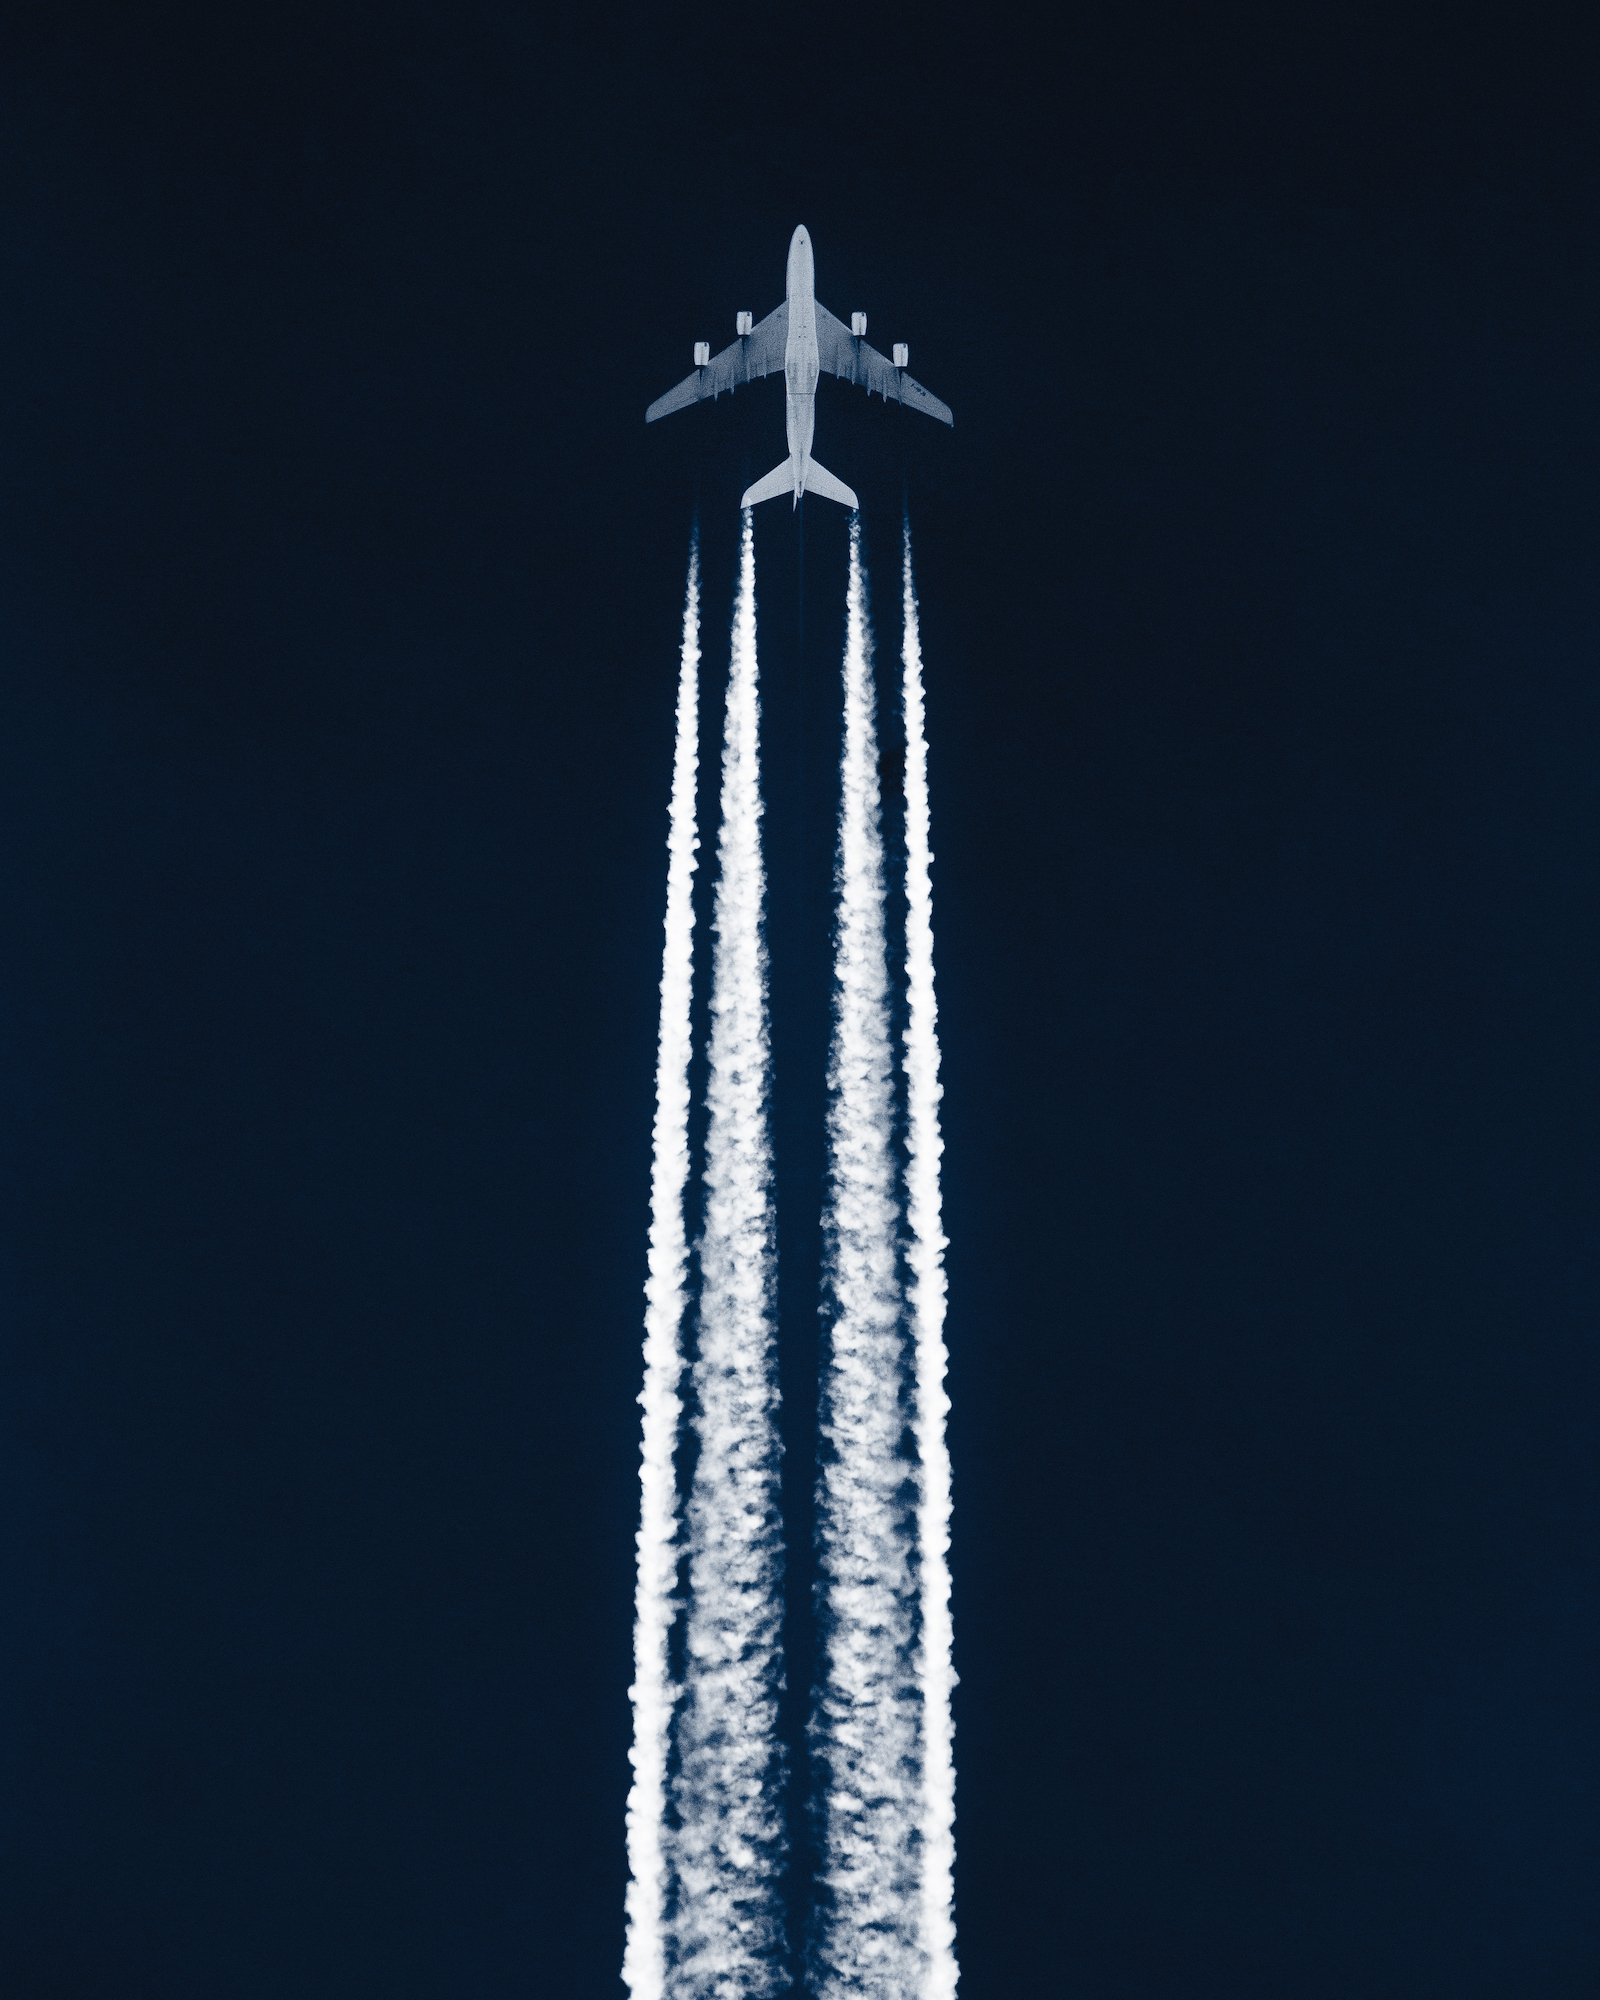 Passenger airplane cruising in the sky leaving contrails behind it